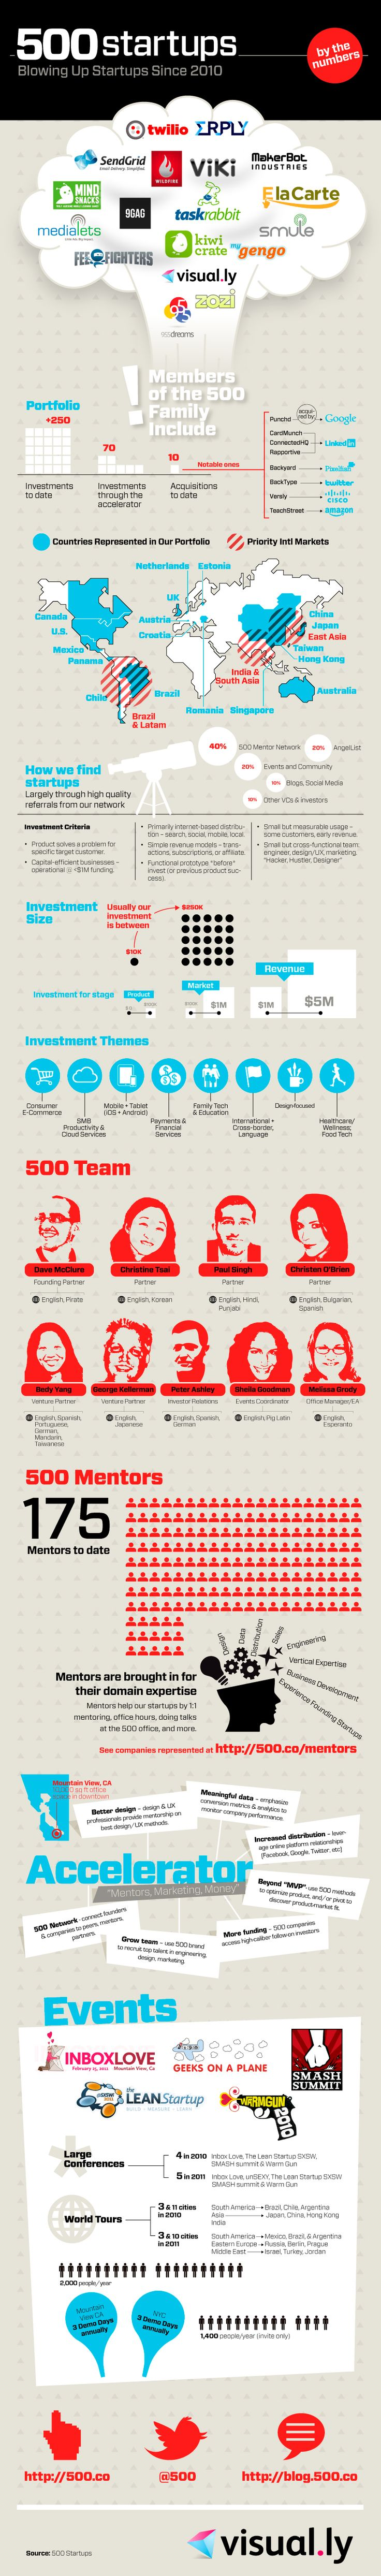 500 Startups Raising New $50M Fund, Names 4 New Partners, With 250+ Investments To Date | TechCrunch